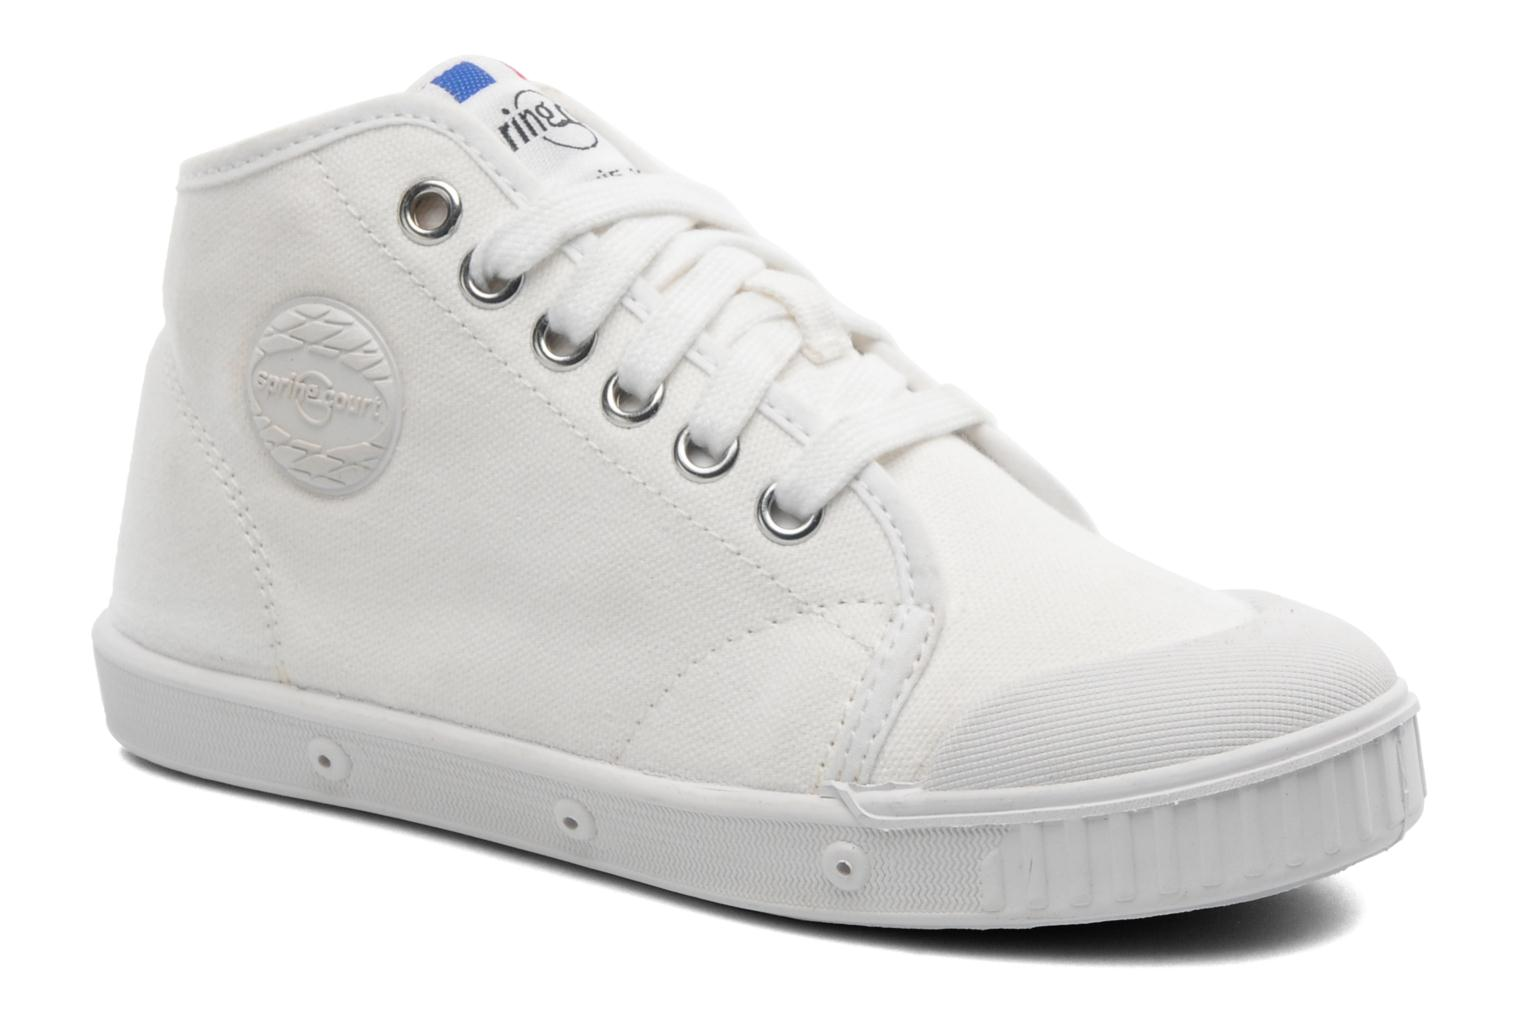 Sneakers BE1 Classic by Spring Court